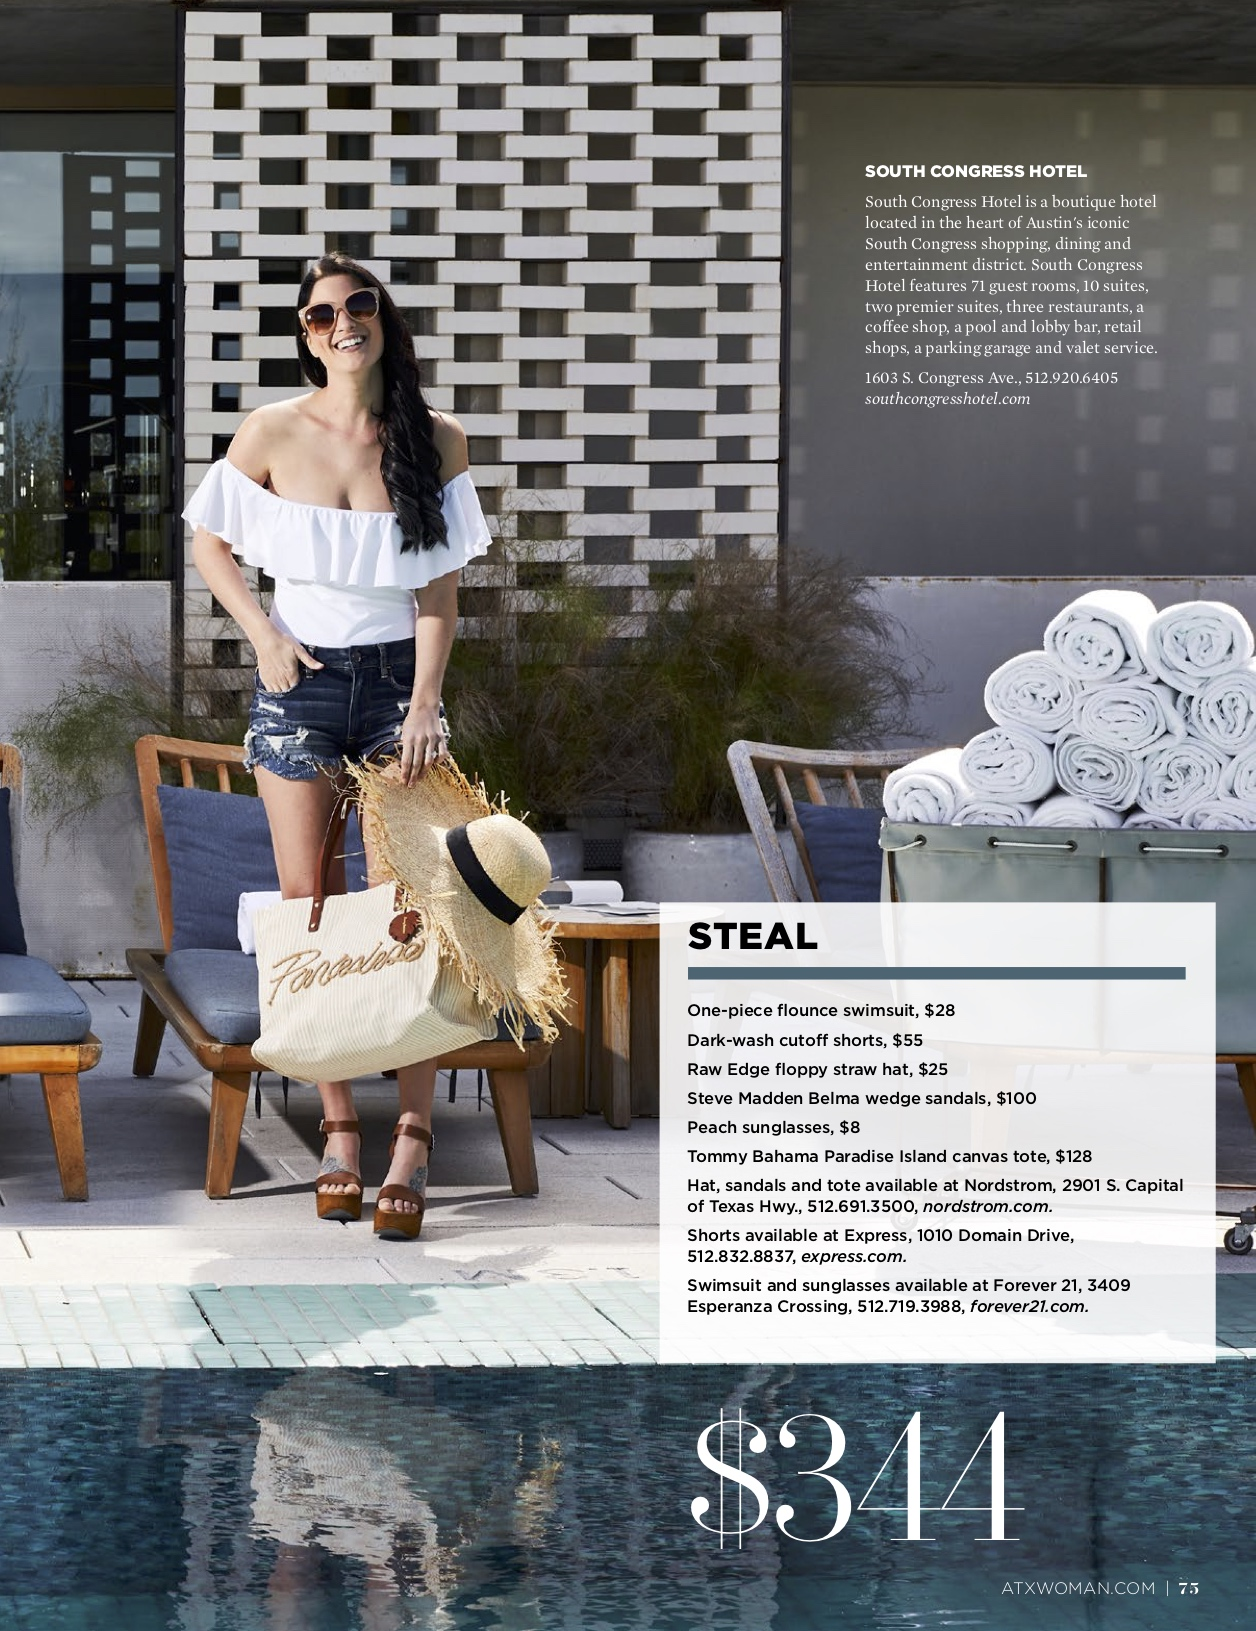 DTKAustin shares her recent Splurge or Steal Column about warm weather swimwear in Austin Woman Magazine just in time for Summer vacation! || Dressed to Kill #summeroutfits #swimwear #affordableswim #onepiecebathingsuit - Summer Pool Outfits + GIVEAWAY} by popular Austin style blogger, Dressed to Kill